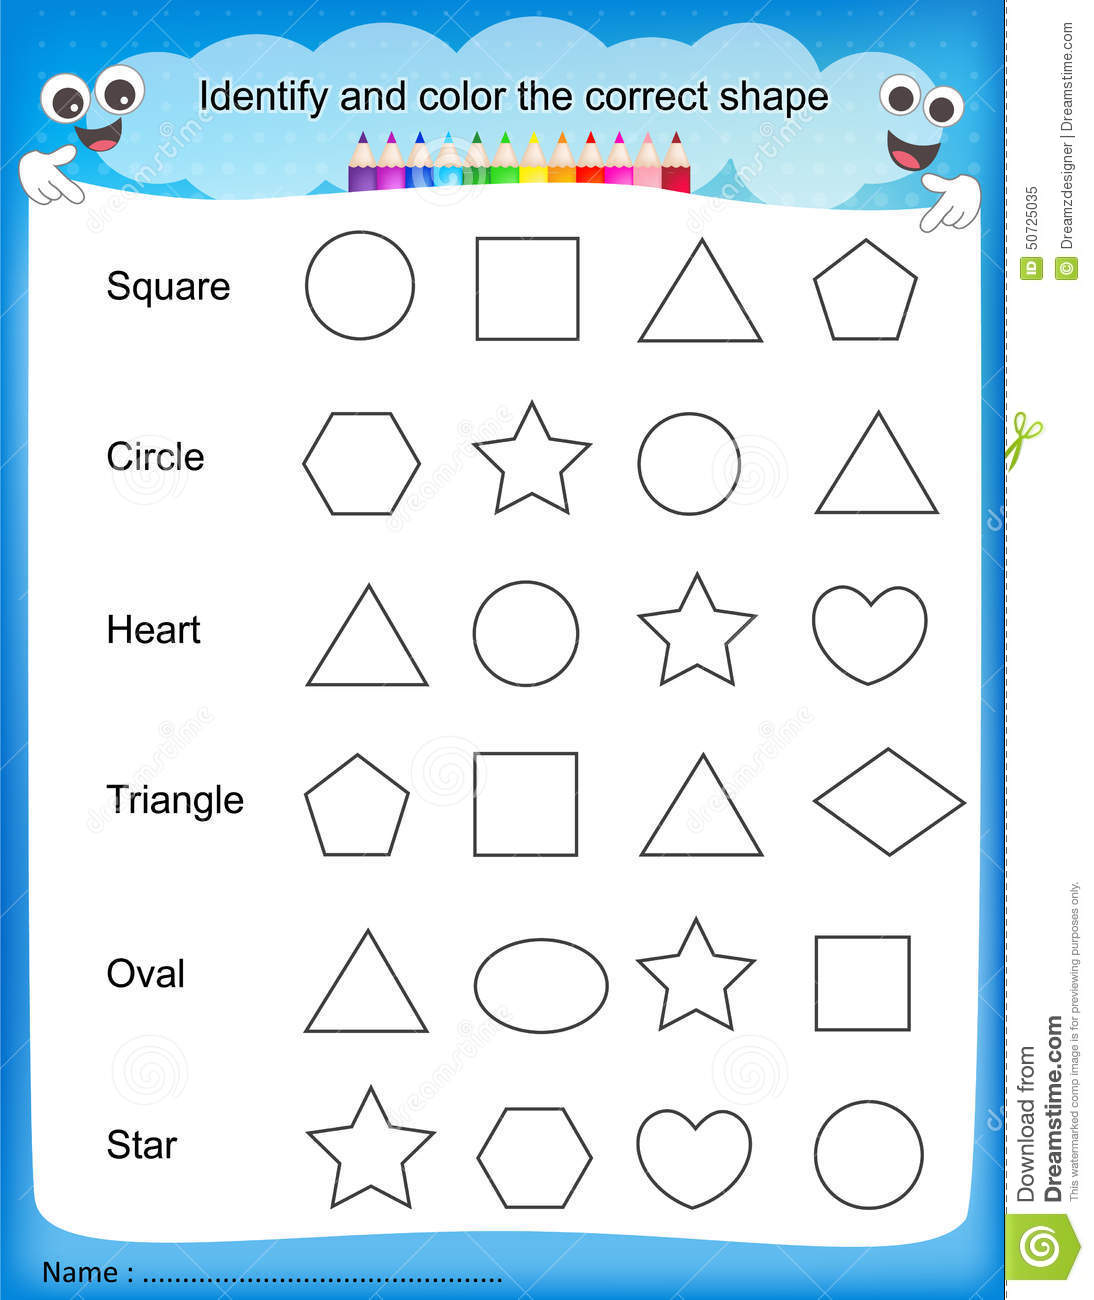 Colours Worksheet For Kindergarten에 대한 이미지 검색결과